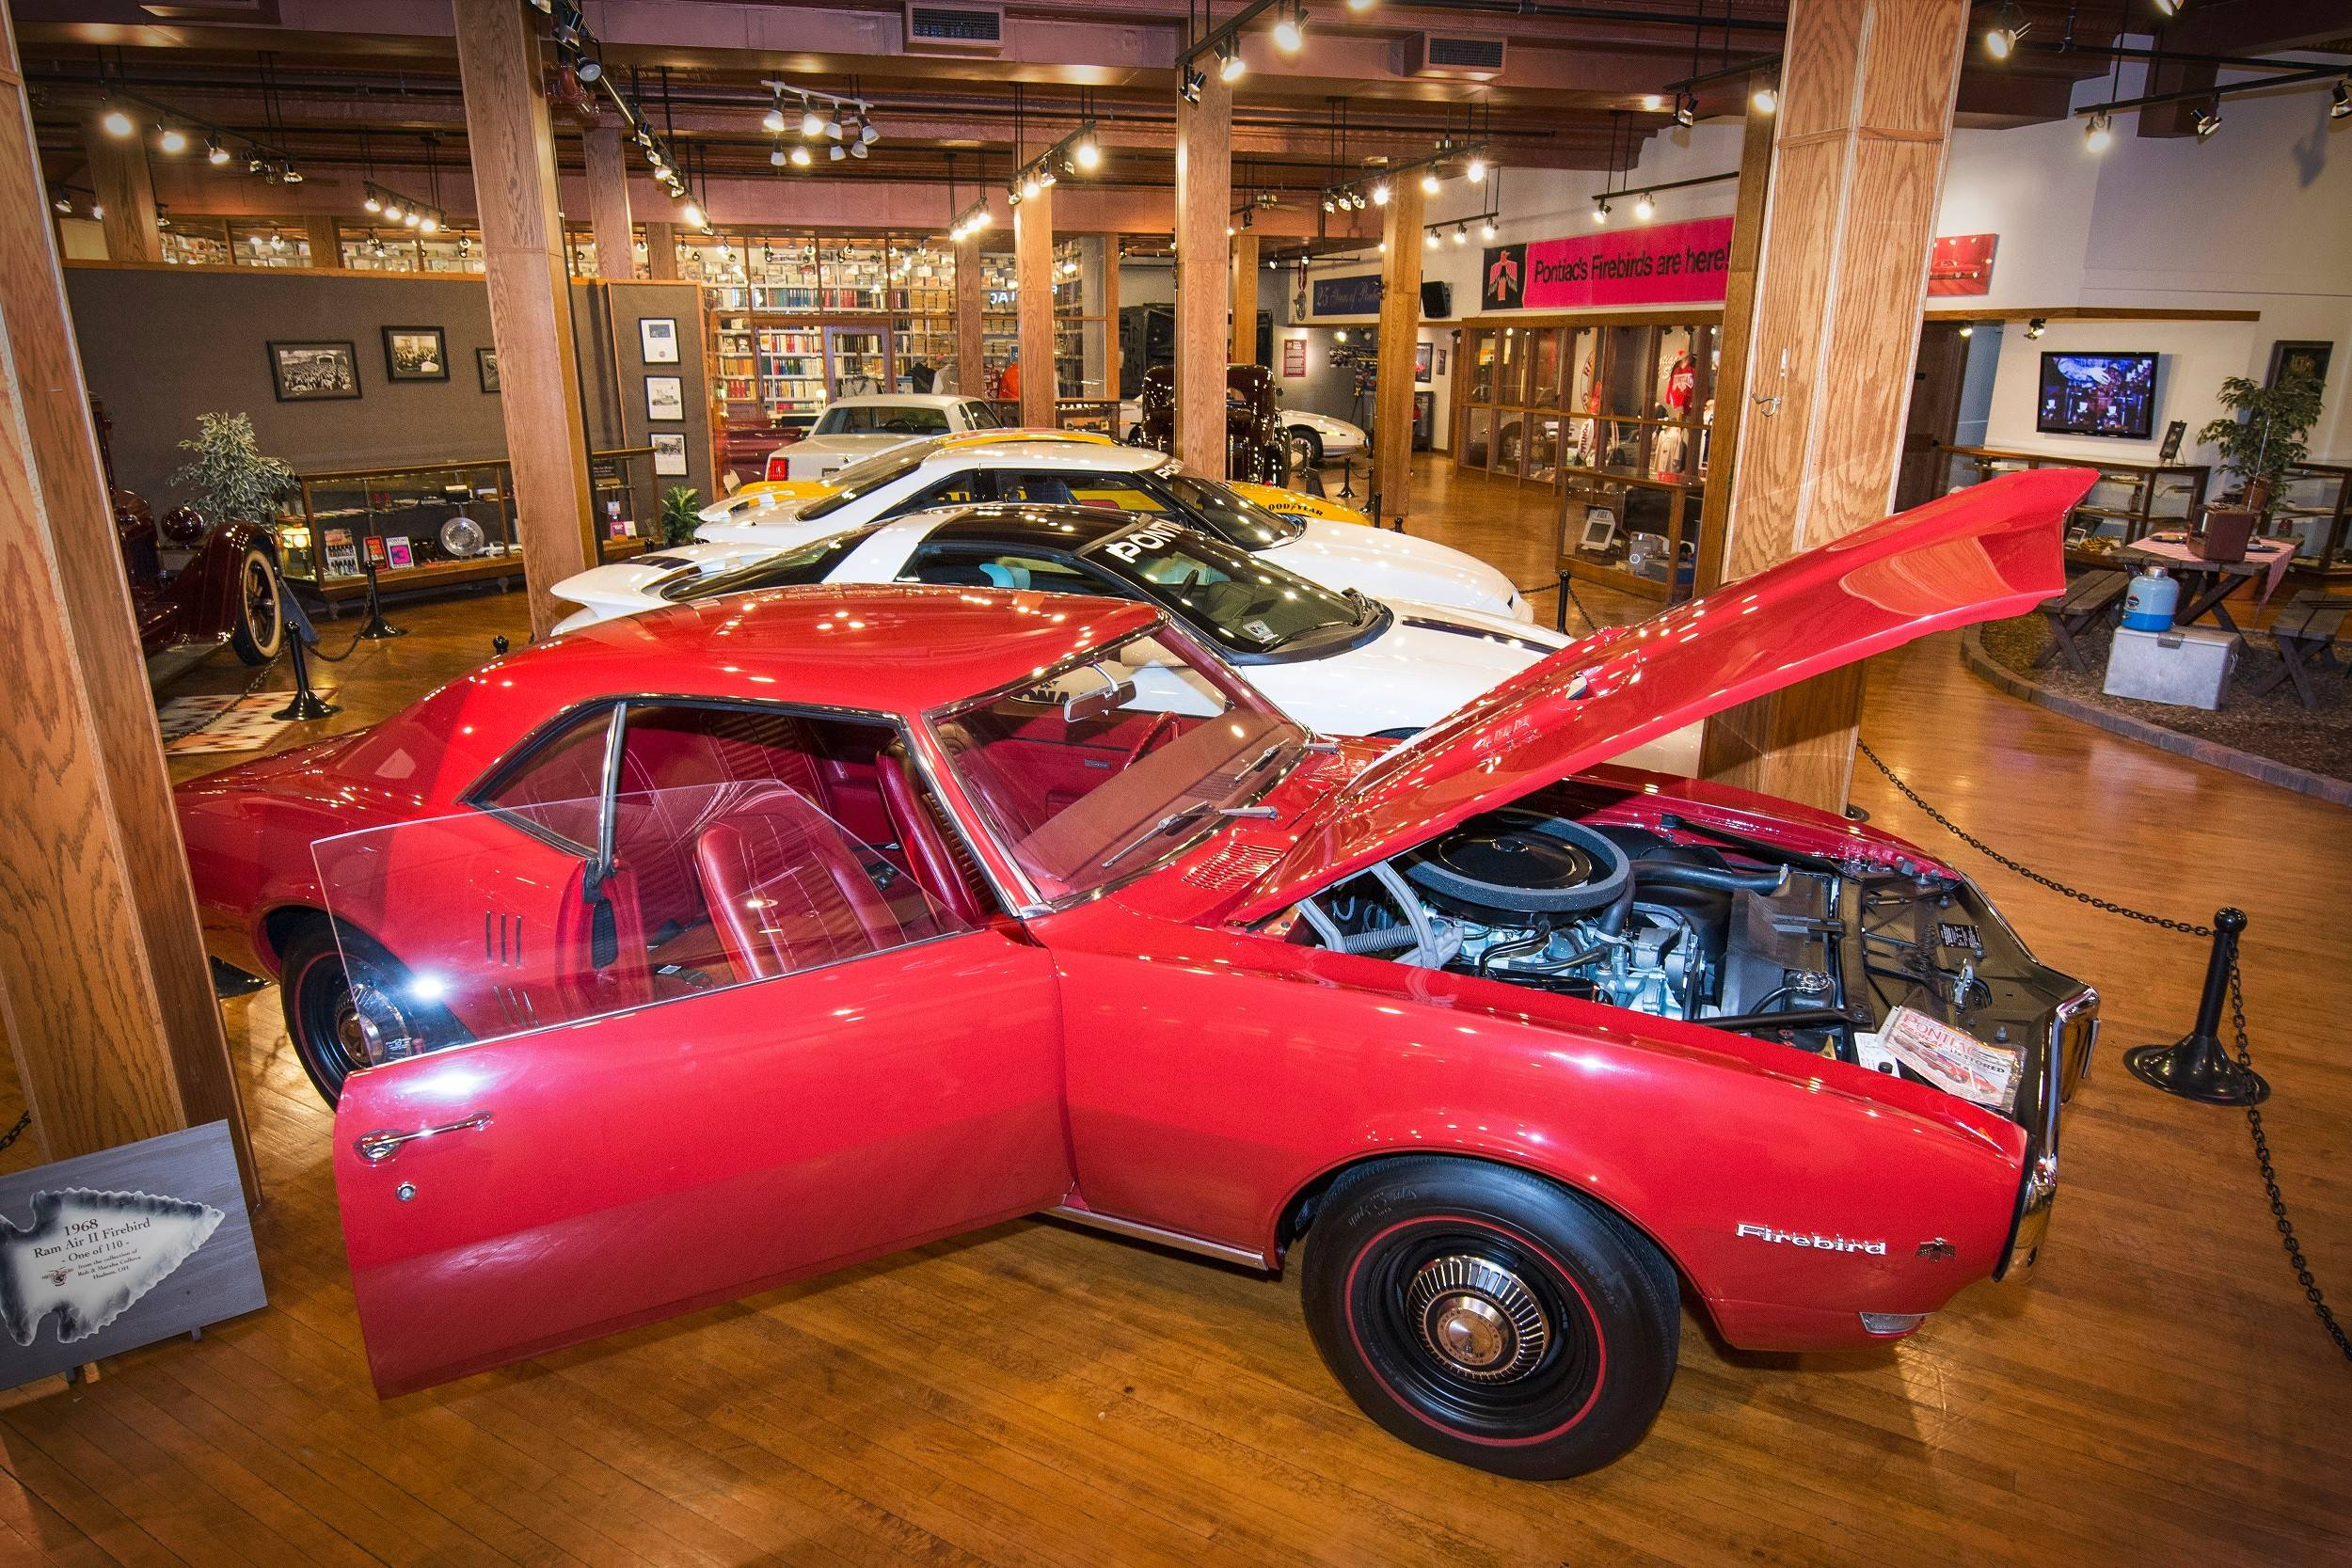 One of the museum's current rotating exhibits is a tribute to the GTO.